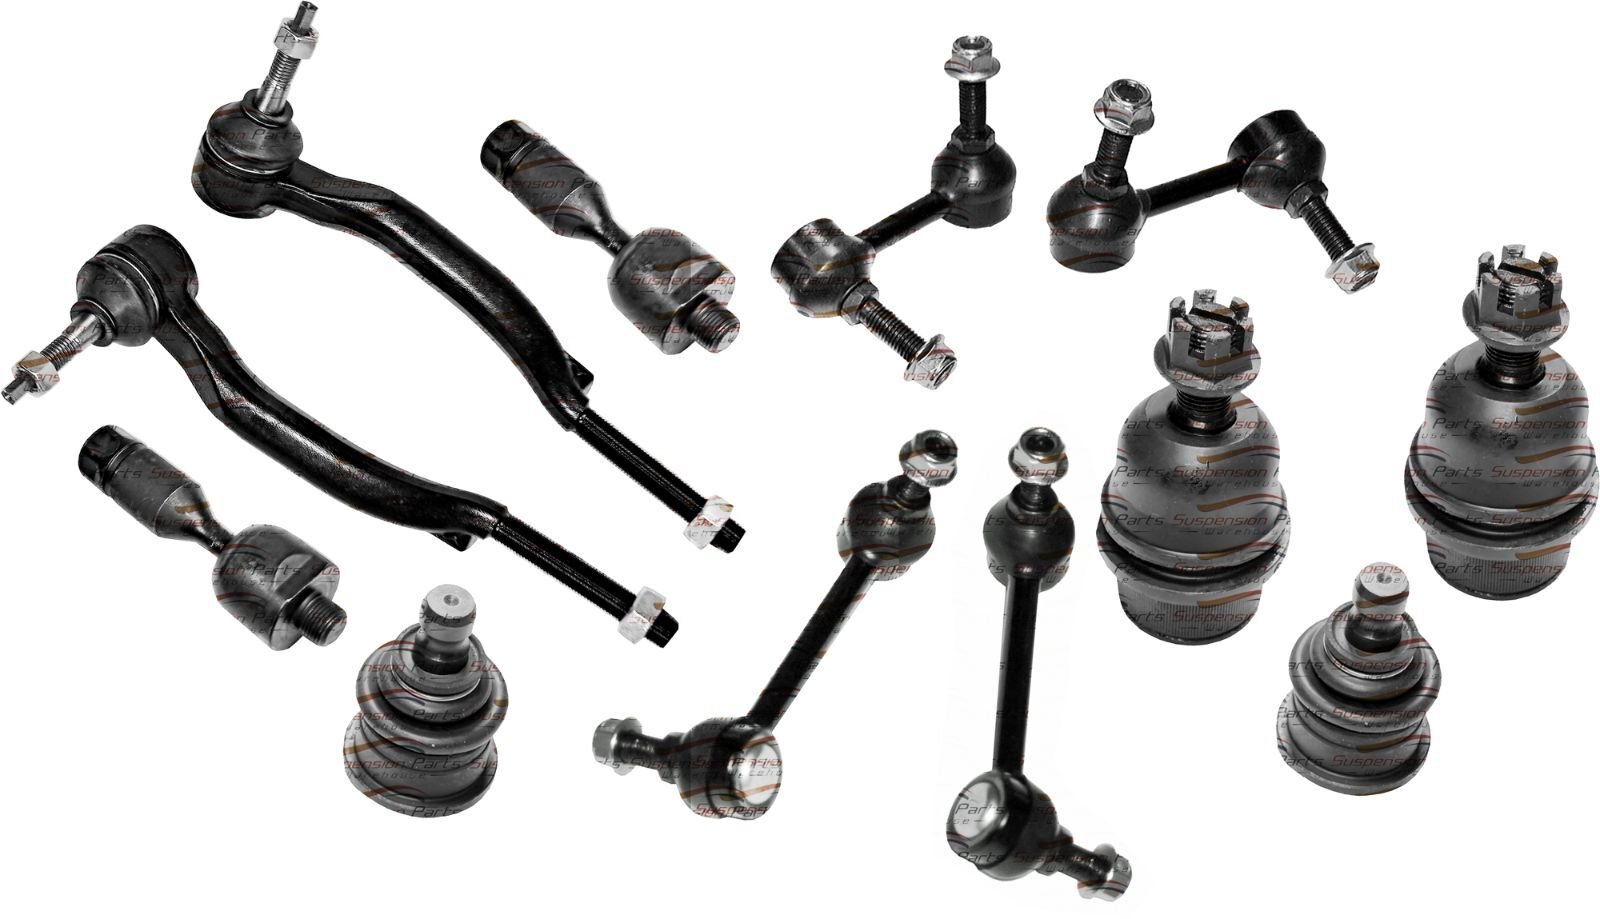 2002 CHEVY TRAILBLAZER INNER TIE ROD BALL JOINT SWAY BAR ...